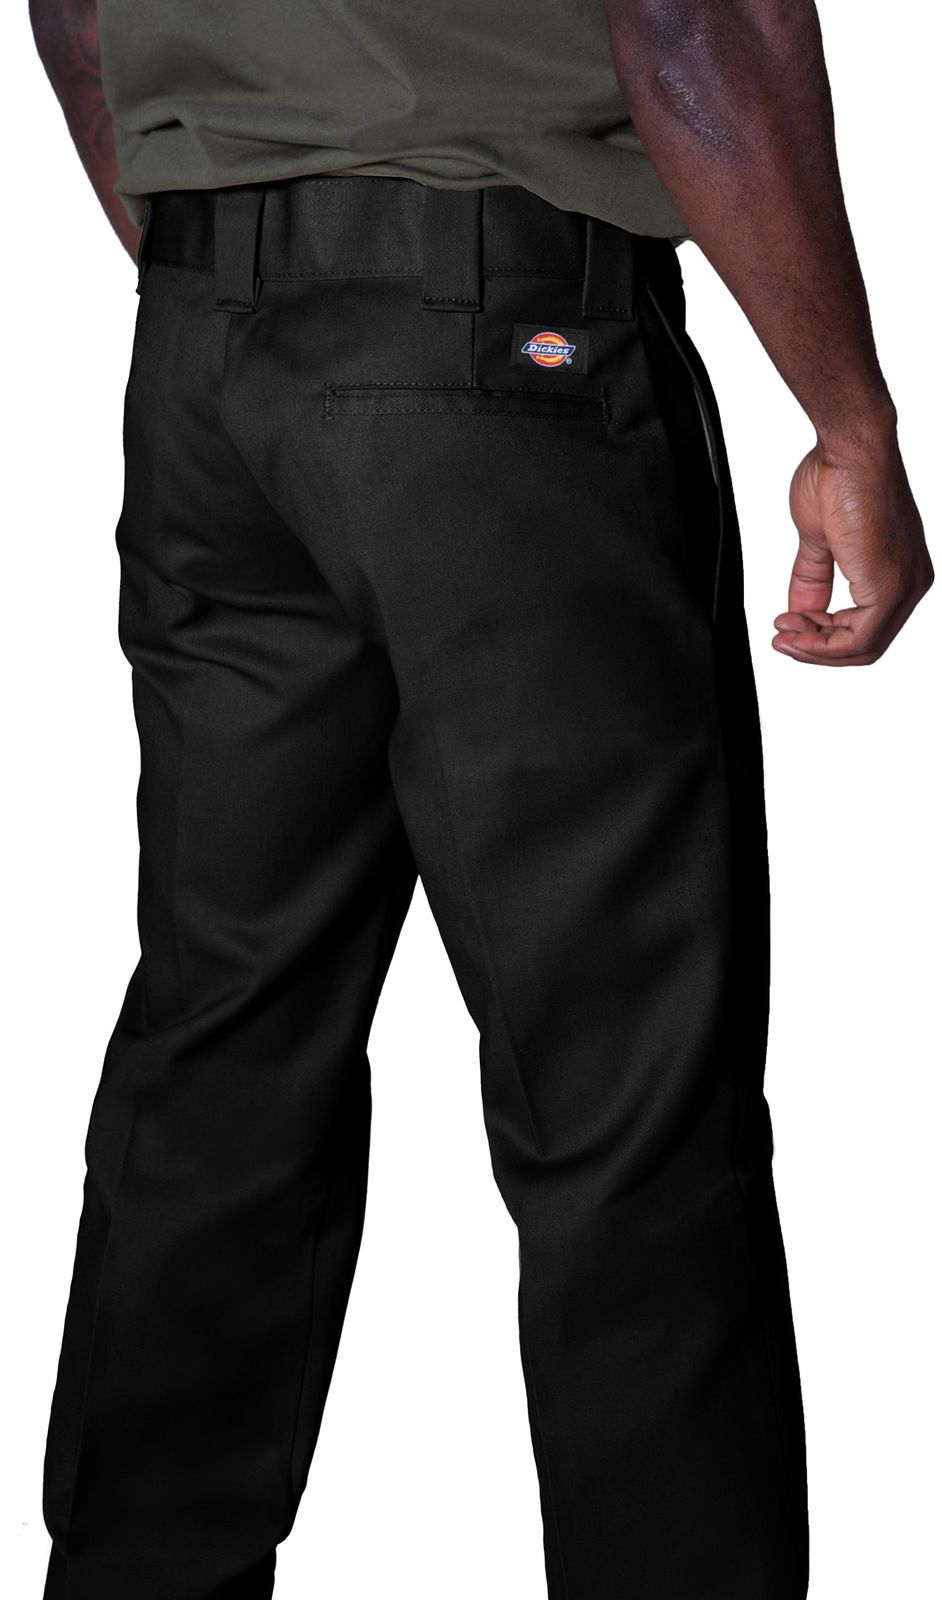 Close-up back view of black twill fabric work pants showing 'Dickies' logo, back pocket and belt loops.